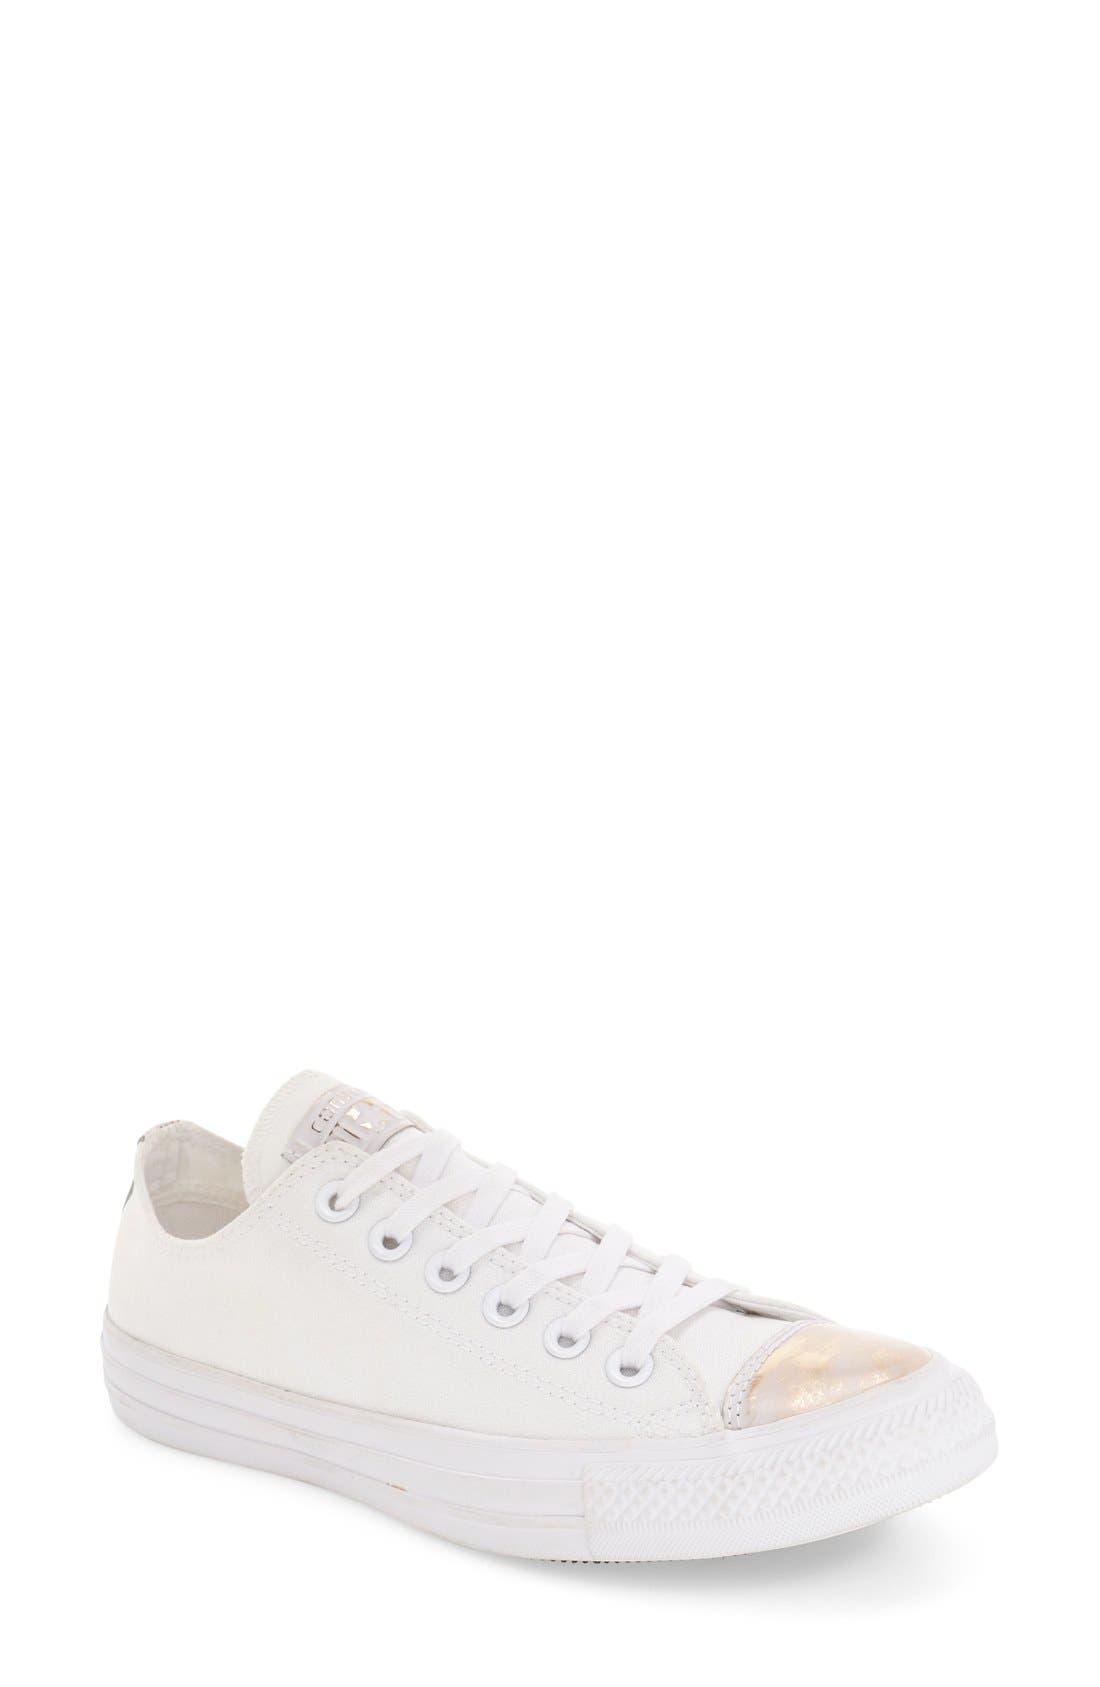 Alternate Image 1 Selected - Converse Chuck Taylor® All Star® 'Brush Off' Metallic Cap Toe Sneaker (Women)